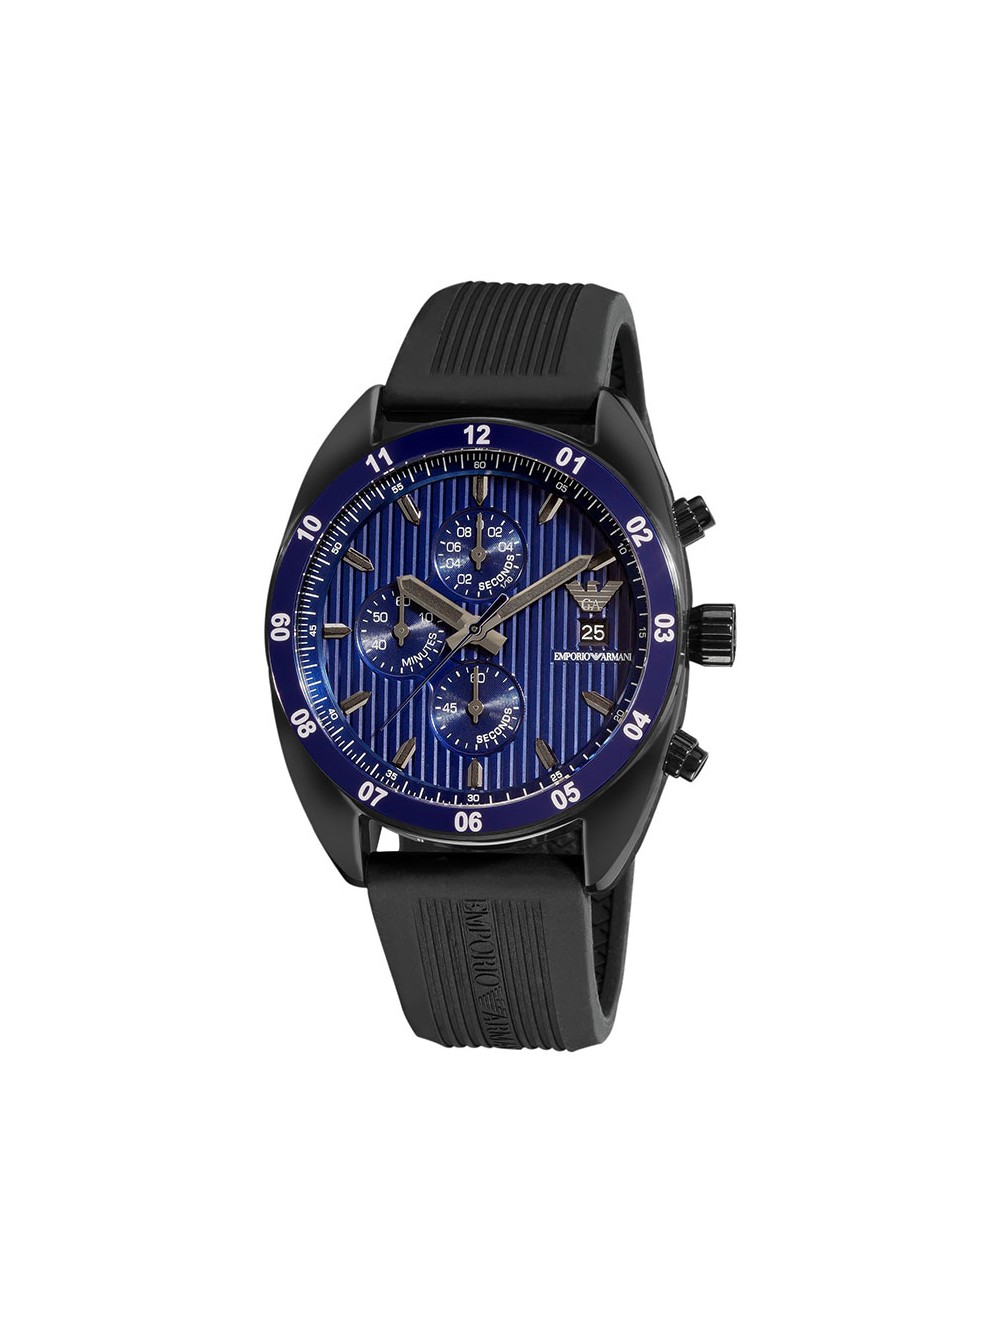 online dial prices dp watches at buy blue low amazon espoir watch mens analog in band india